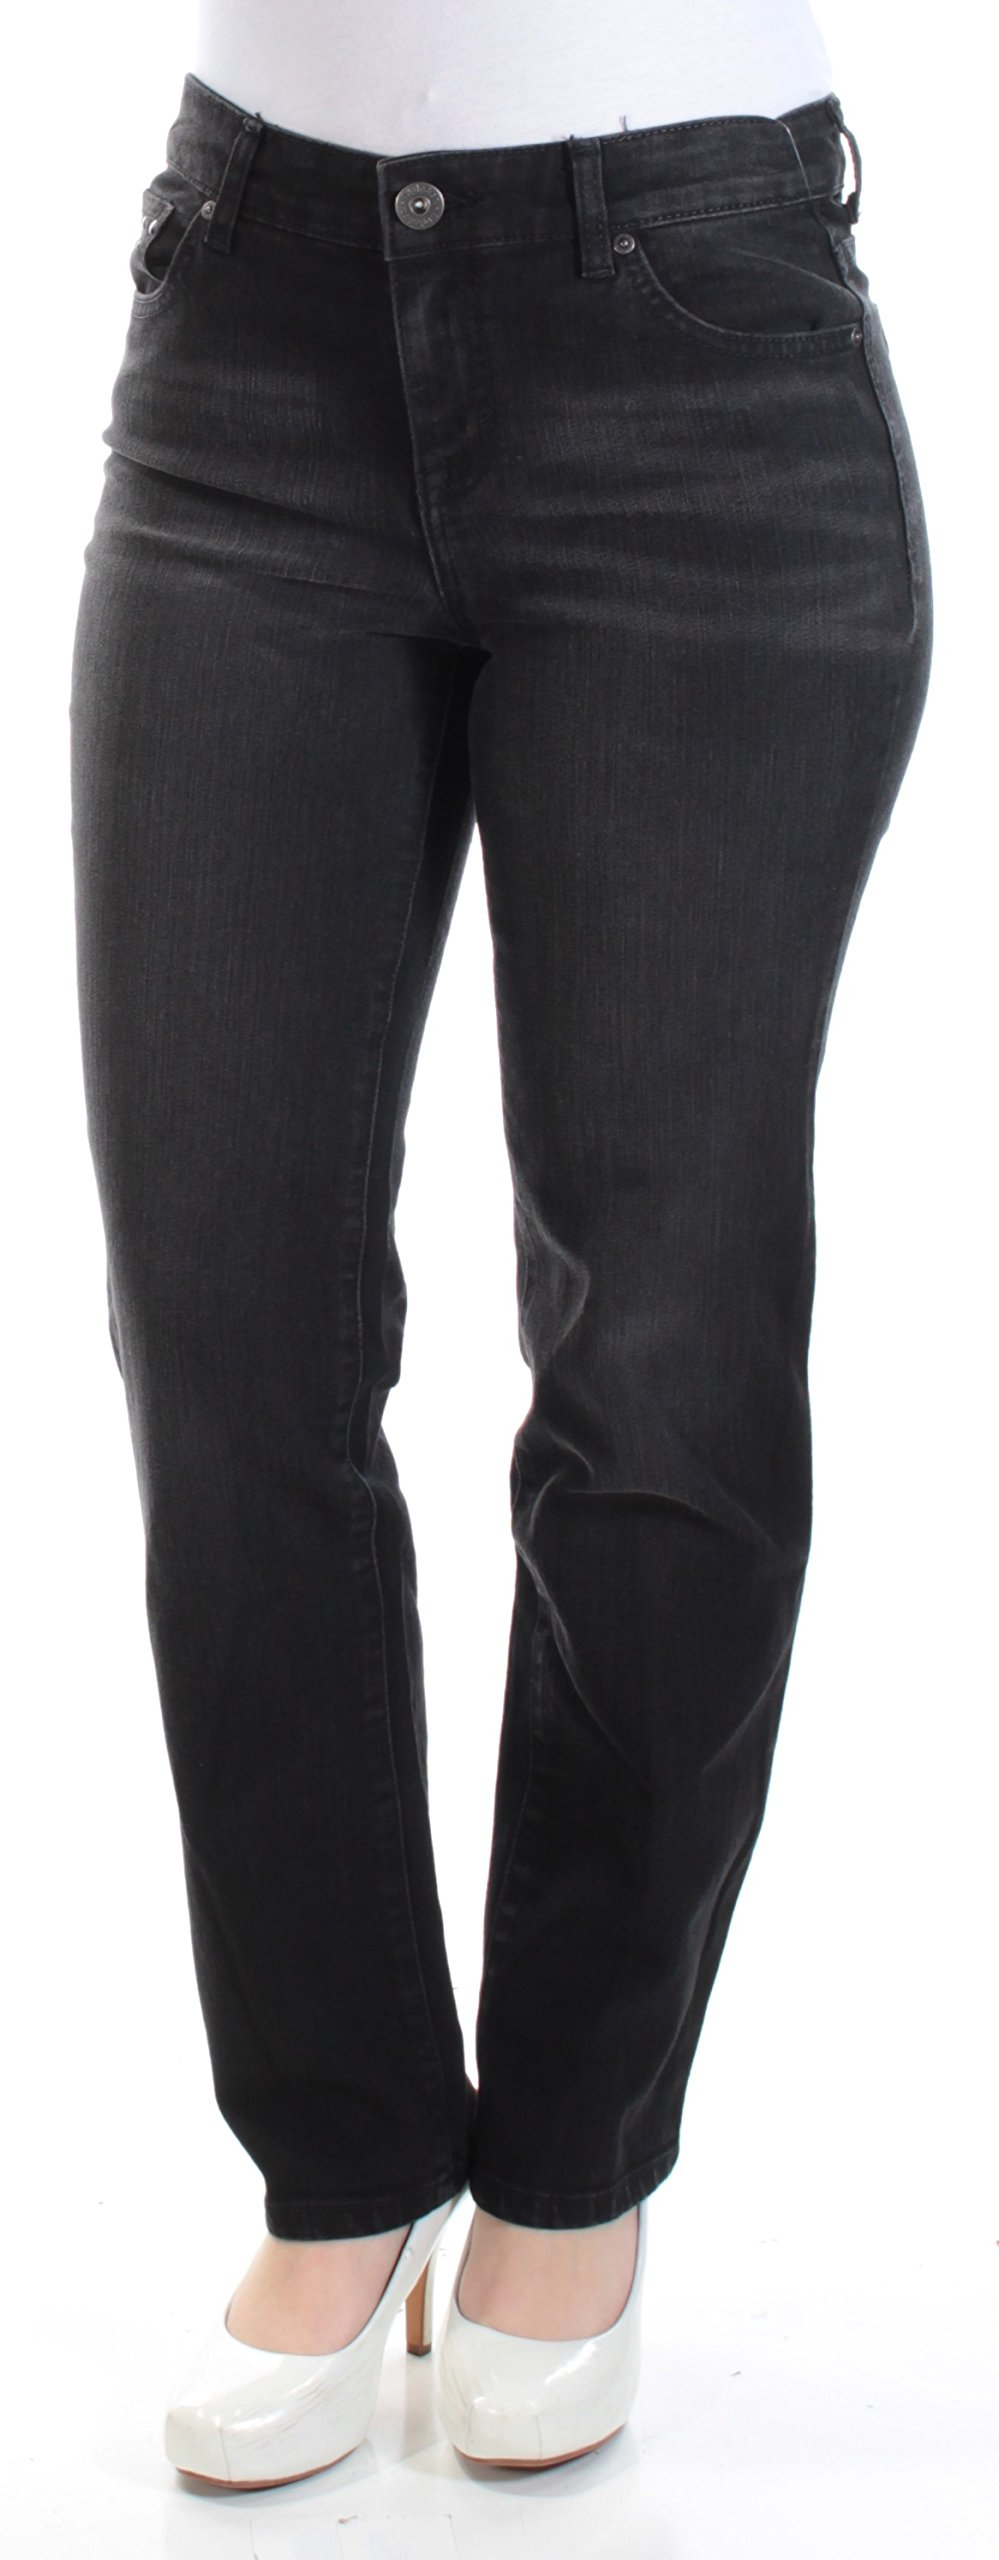 Style & Co. Vintage Soul Straight Leg Faded Black Petite Jeans 6P